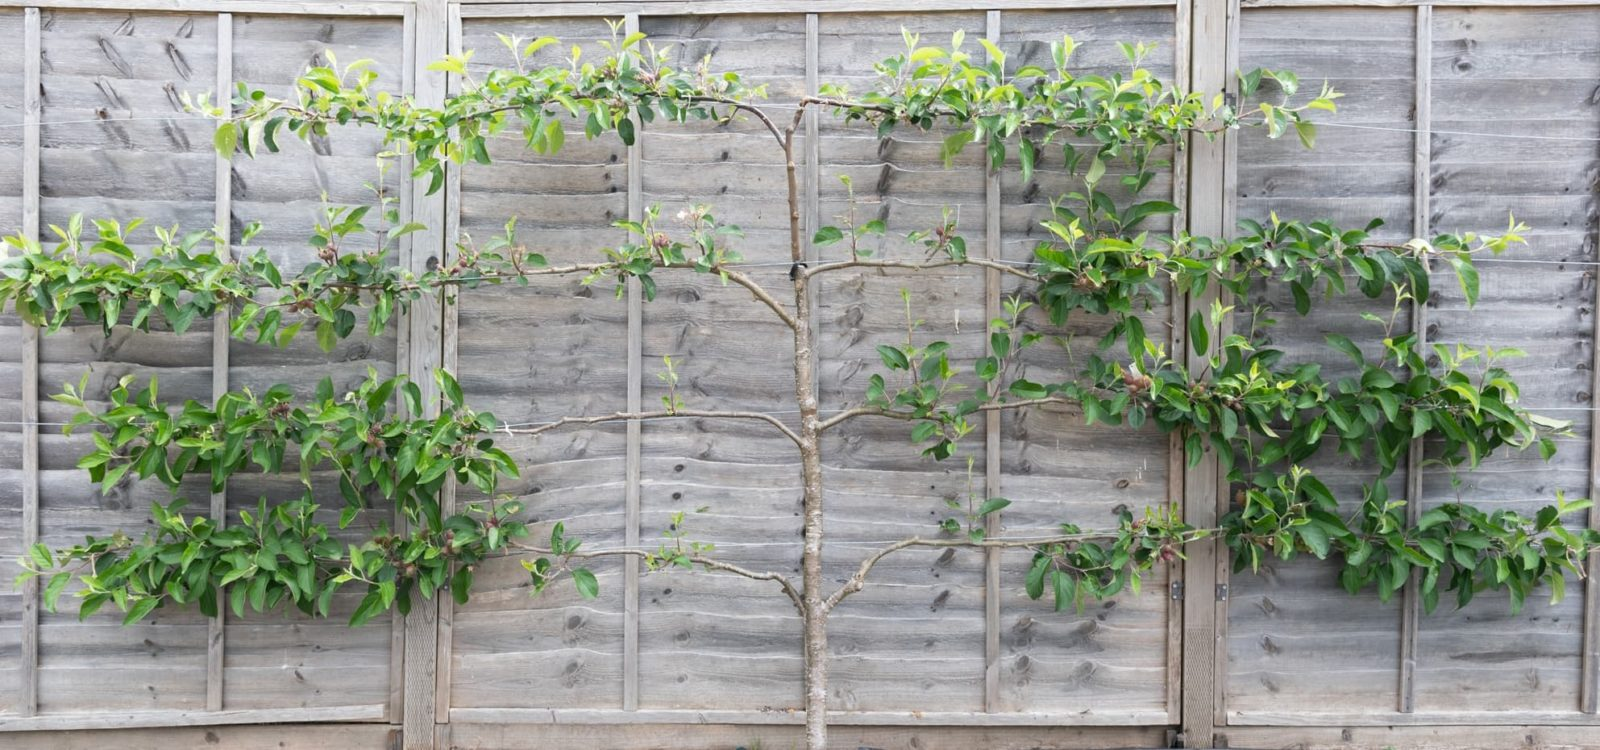 an espalier fruit tree trained against a grey fence